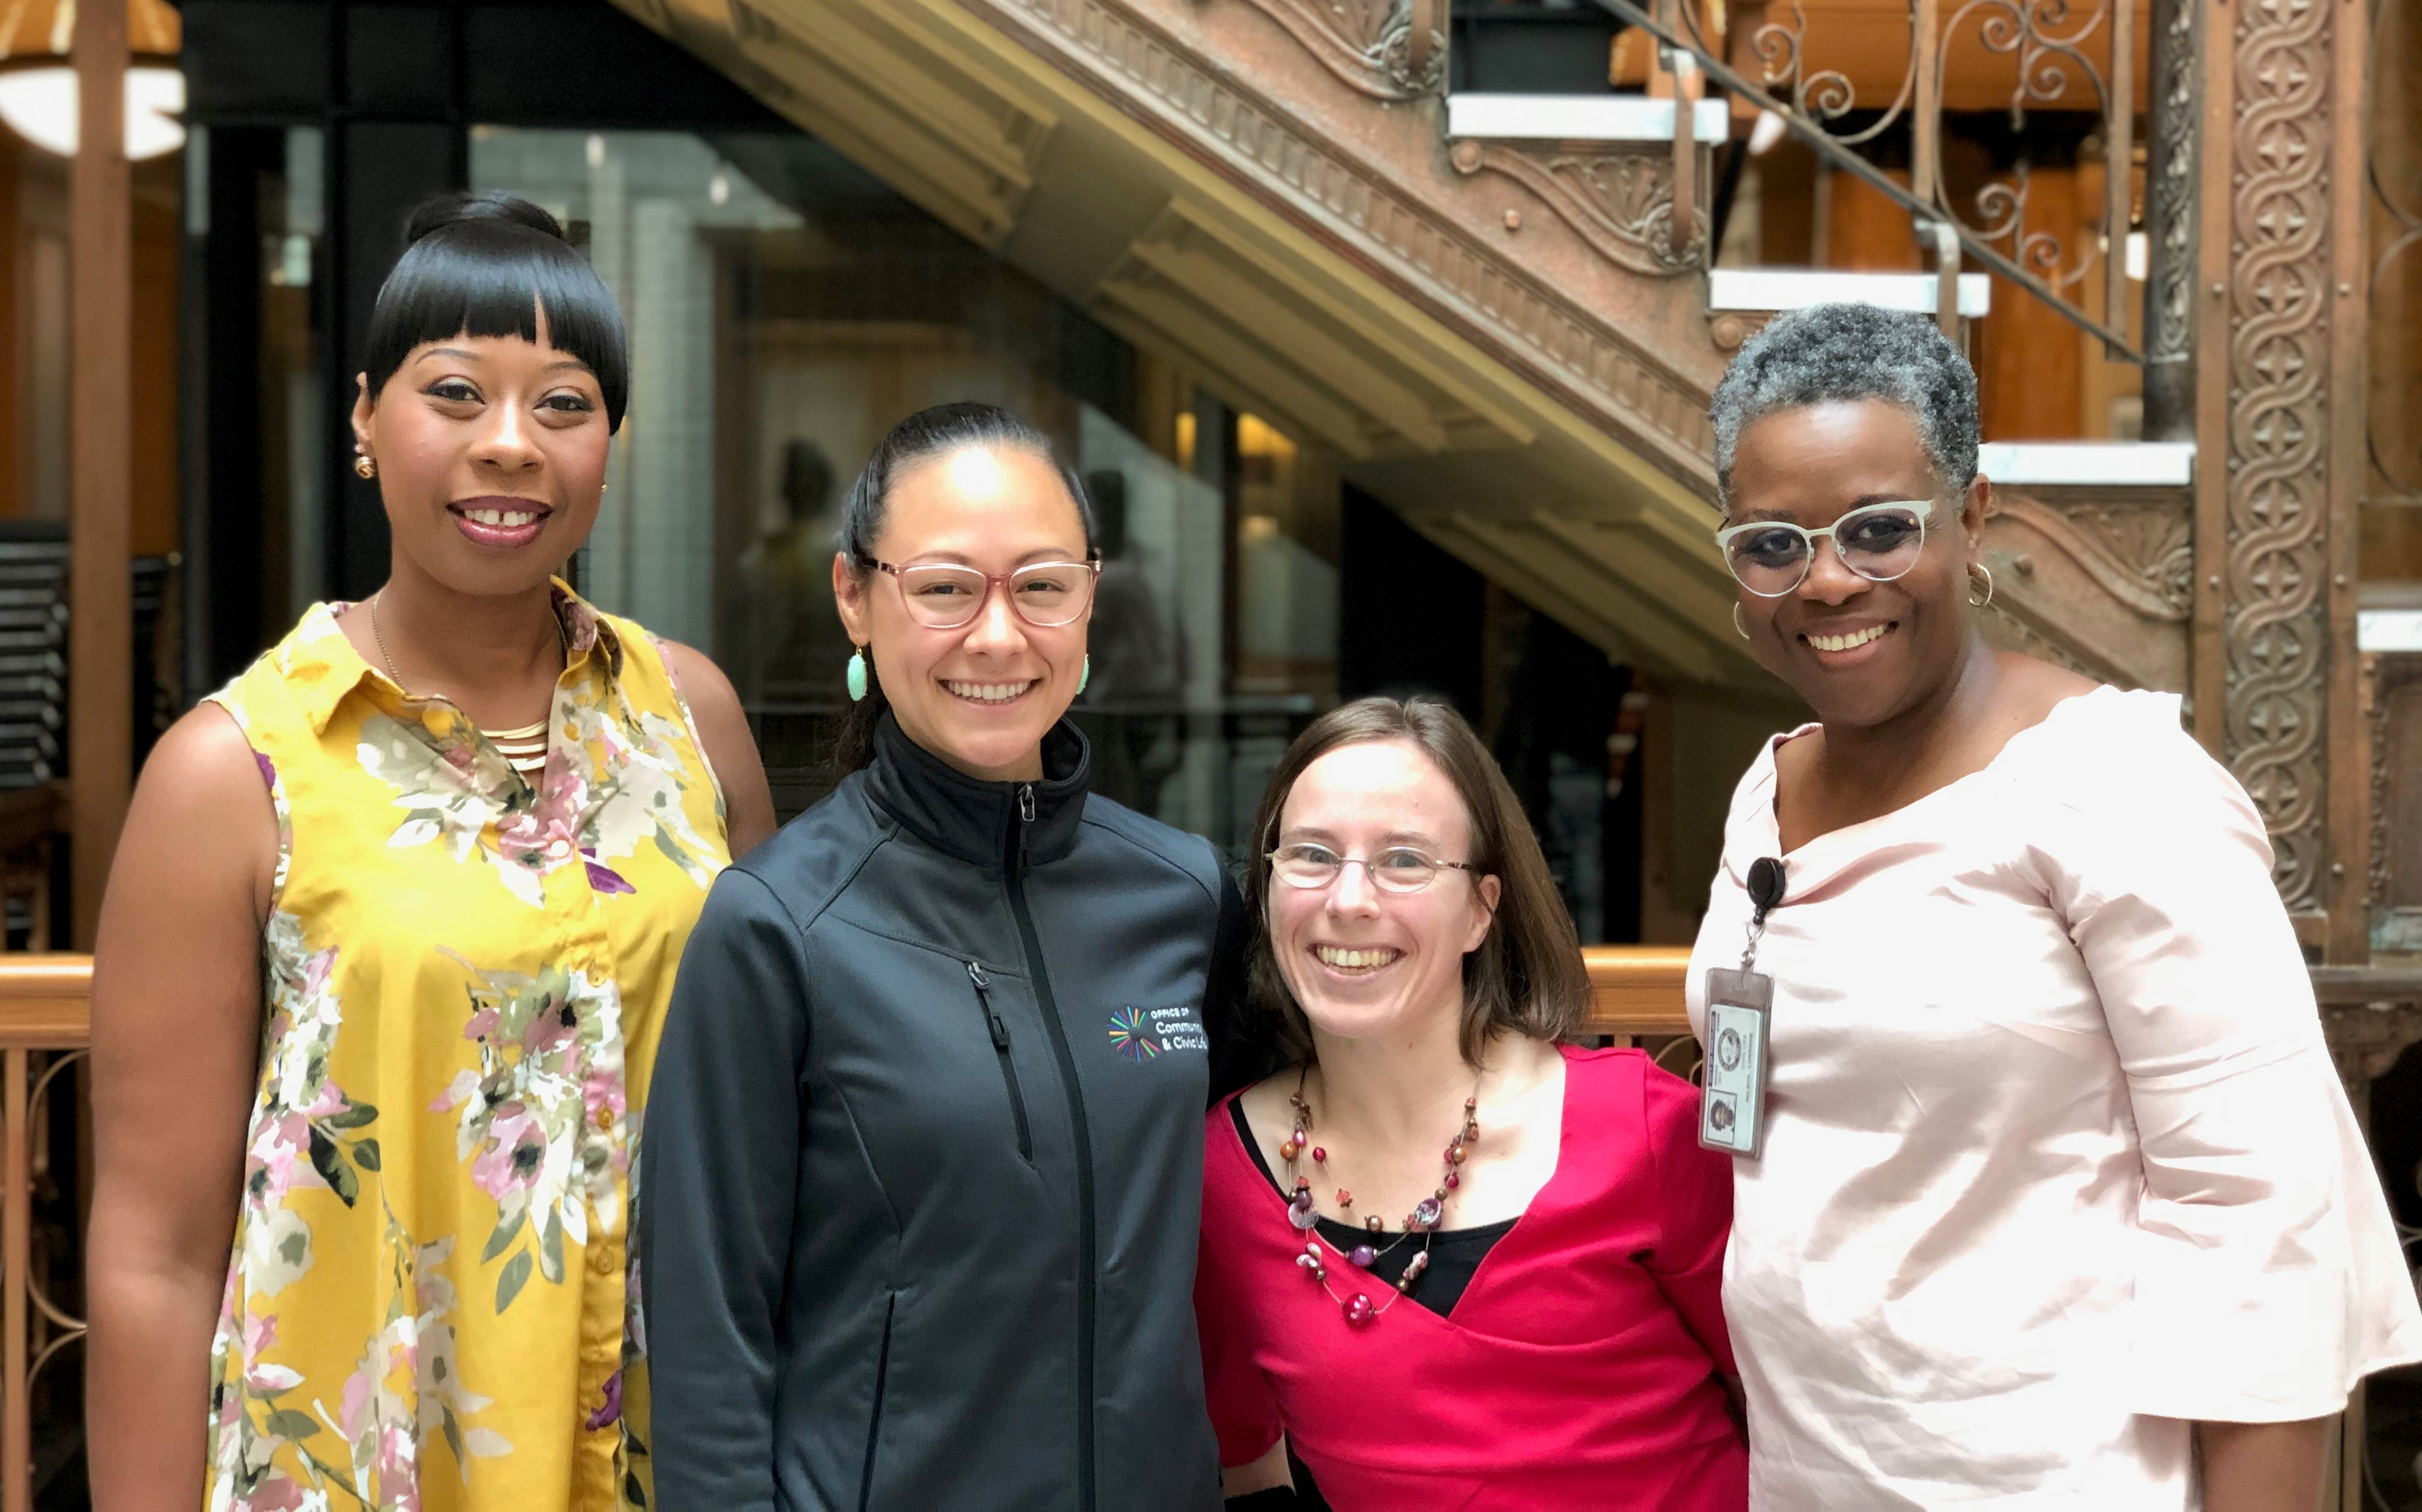 Group photo of Tyesha McCool-Riley, Ashley Tjaden, Joanne Johnson, and Lorraine Wilson, arms around each others' shoulders, facing the camera and smiling. Behind them, the ornate elevator and staircase in City Hall is visible.